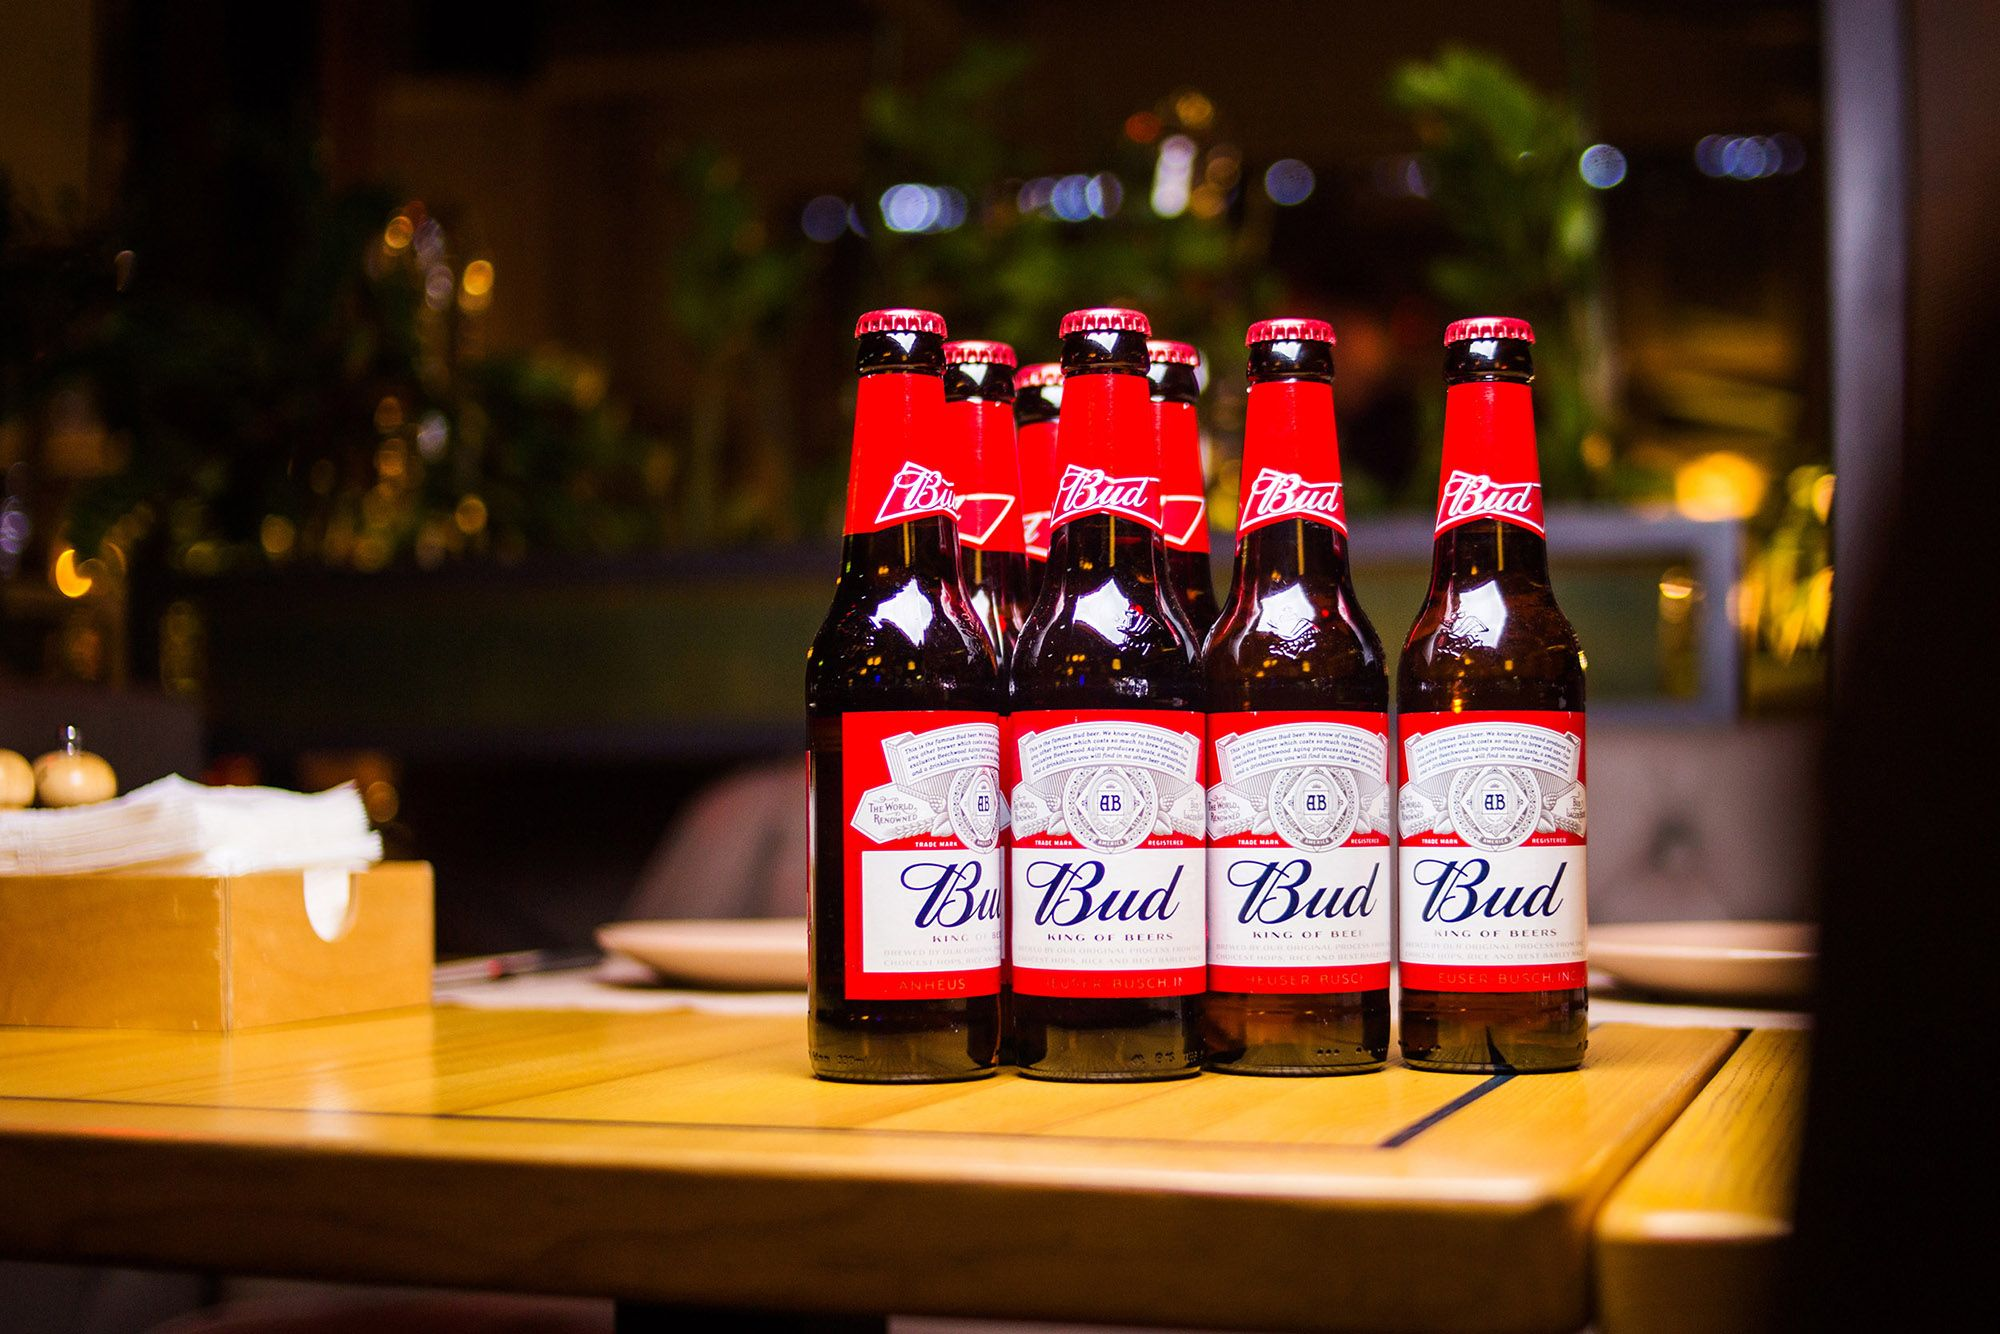 The Maker Of Budweiser Just Partnered With A Marijuana Company To